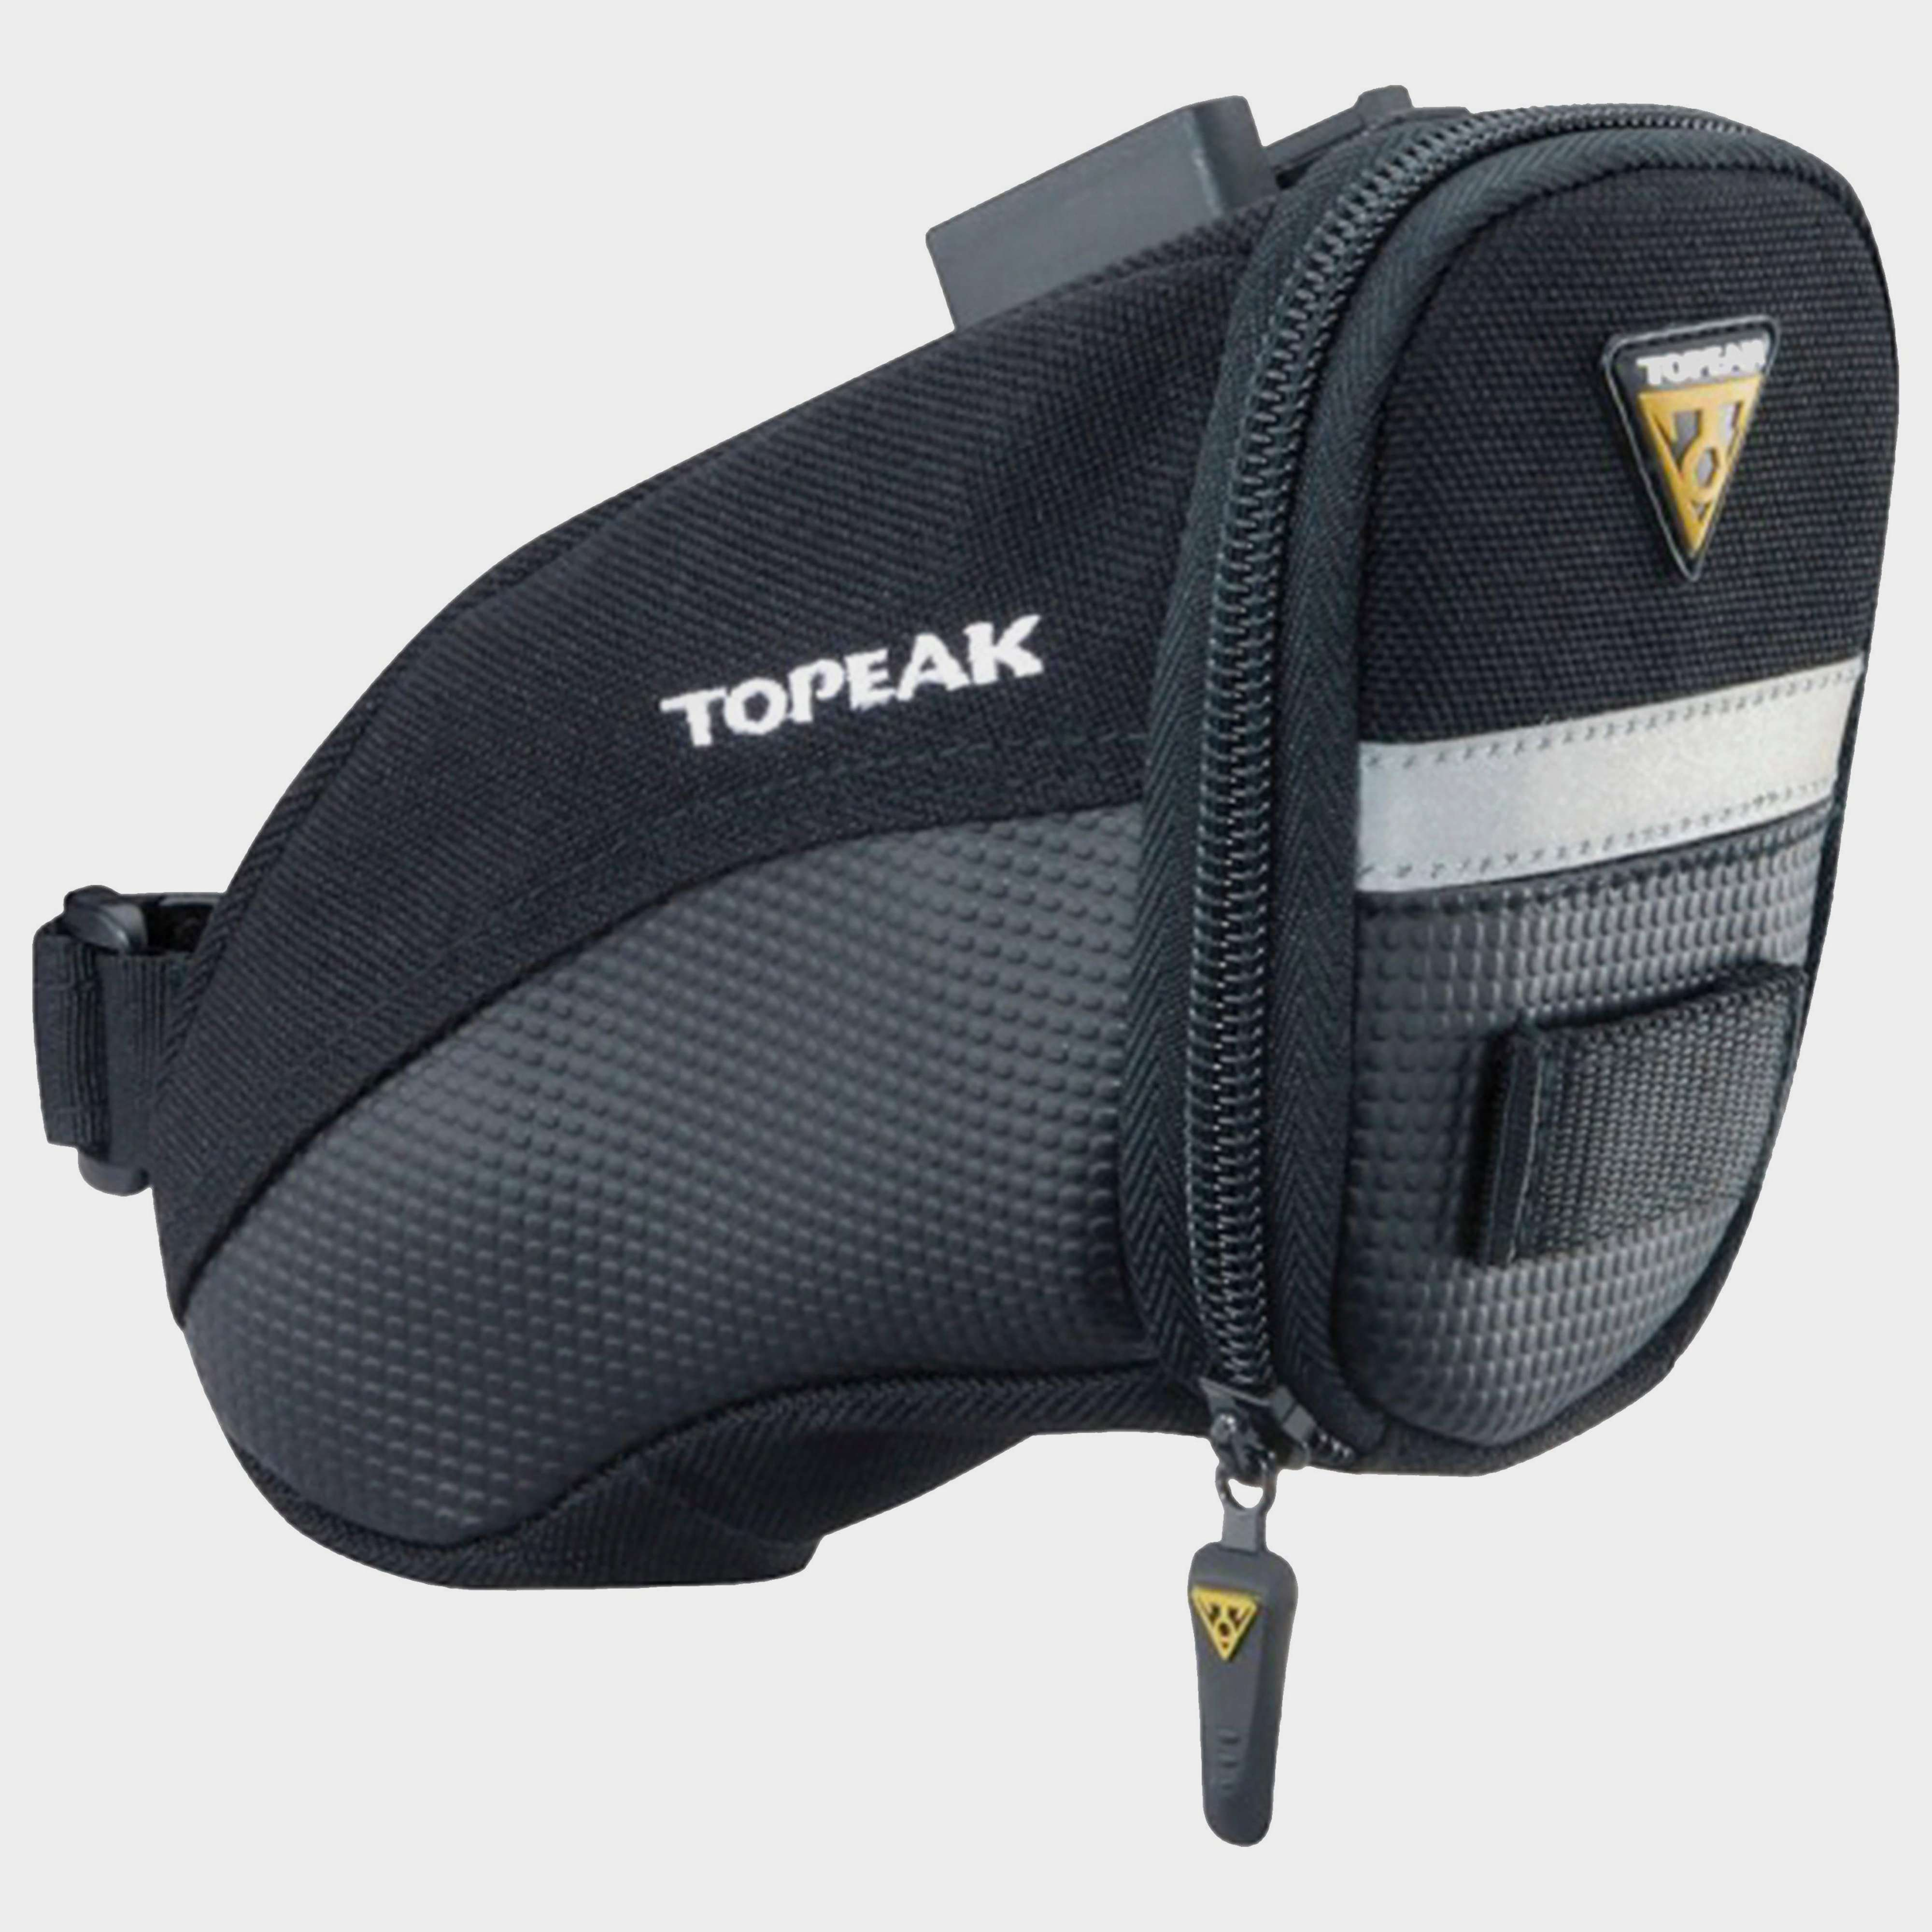 TOPEAK Aero Wedge Quick Clip Saddle Bag